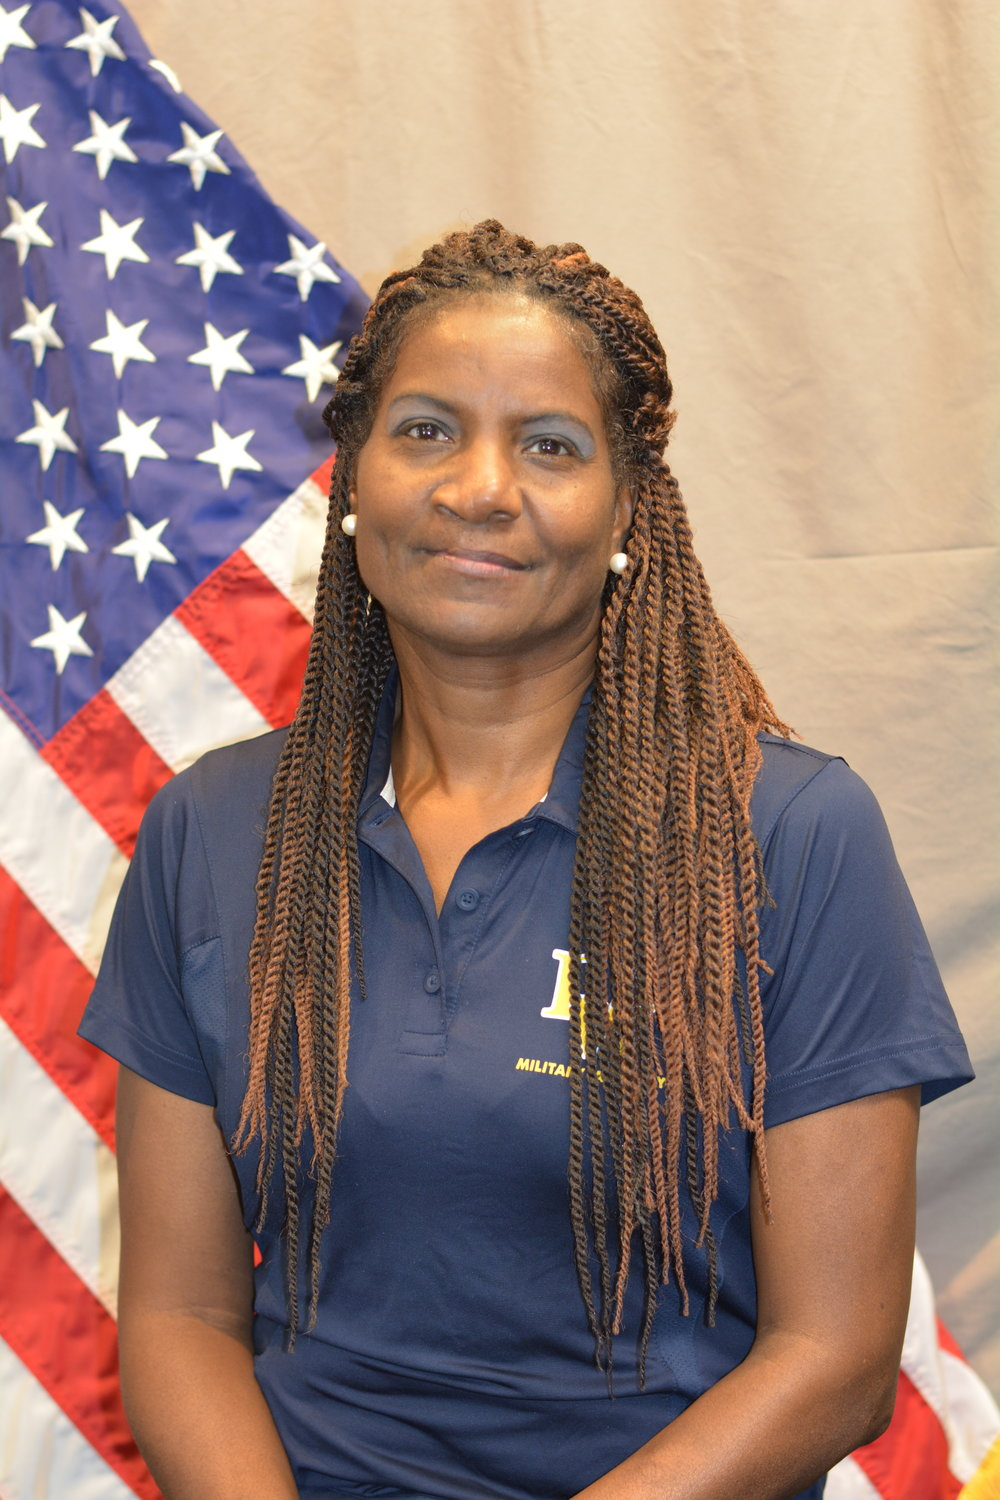 Wynetta F Holley    Laundry Supervisor     Hometown : Lafayette, AL  Hobbies:   Dancing, spending quality time with family, listening to music and attending church where I volunteer.  Family:   4 children, 2 boys and 2 girls and 4 grandchildren. Started at LWMA in 1995